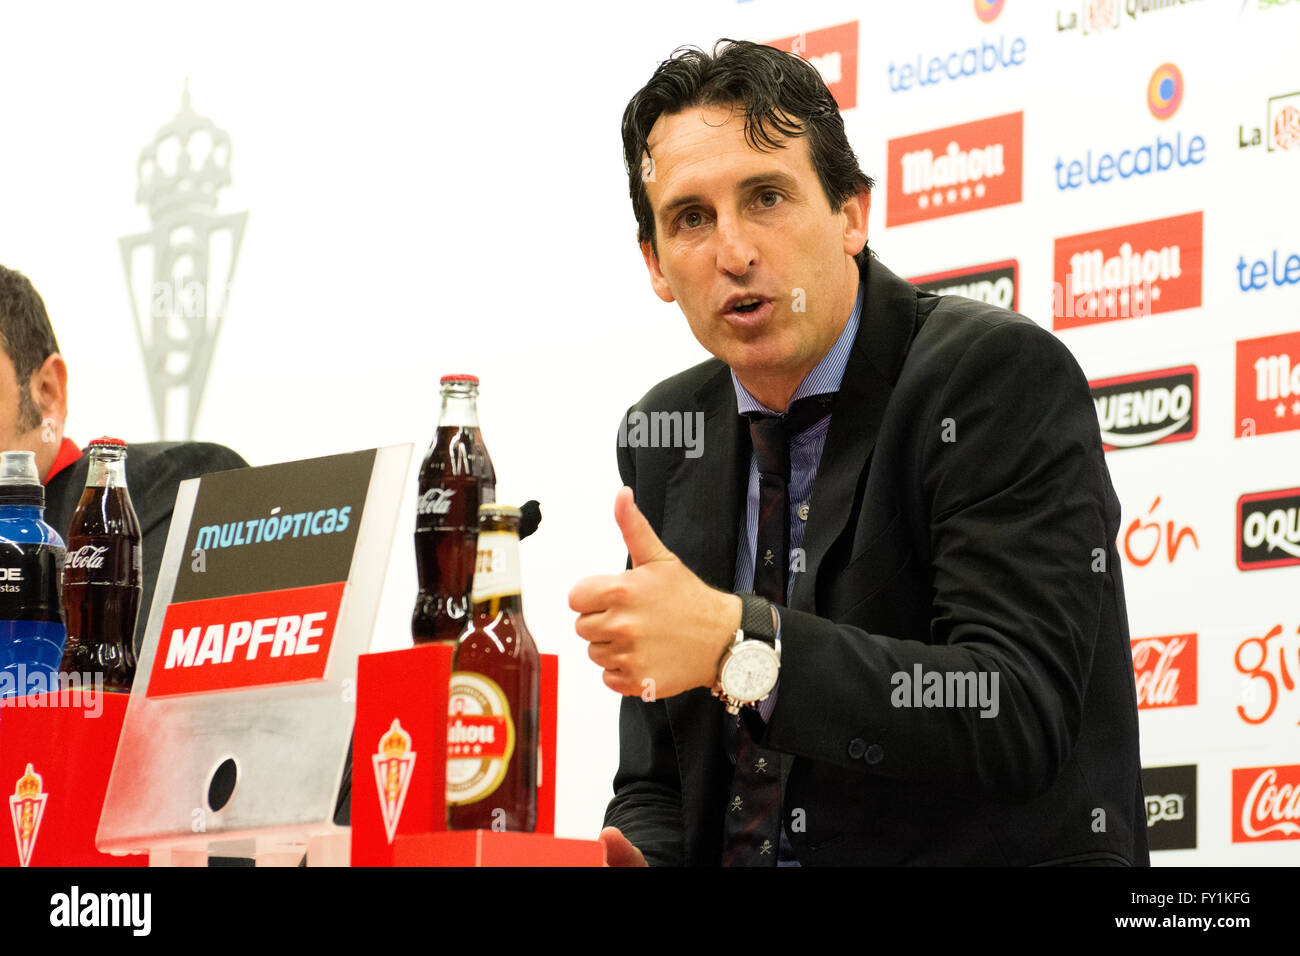 Gijon, Spain. 20th April, 2016. Unai Emery (coach, Sevilla FC) during press conference of the football match of - Stock Image